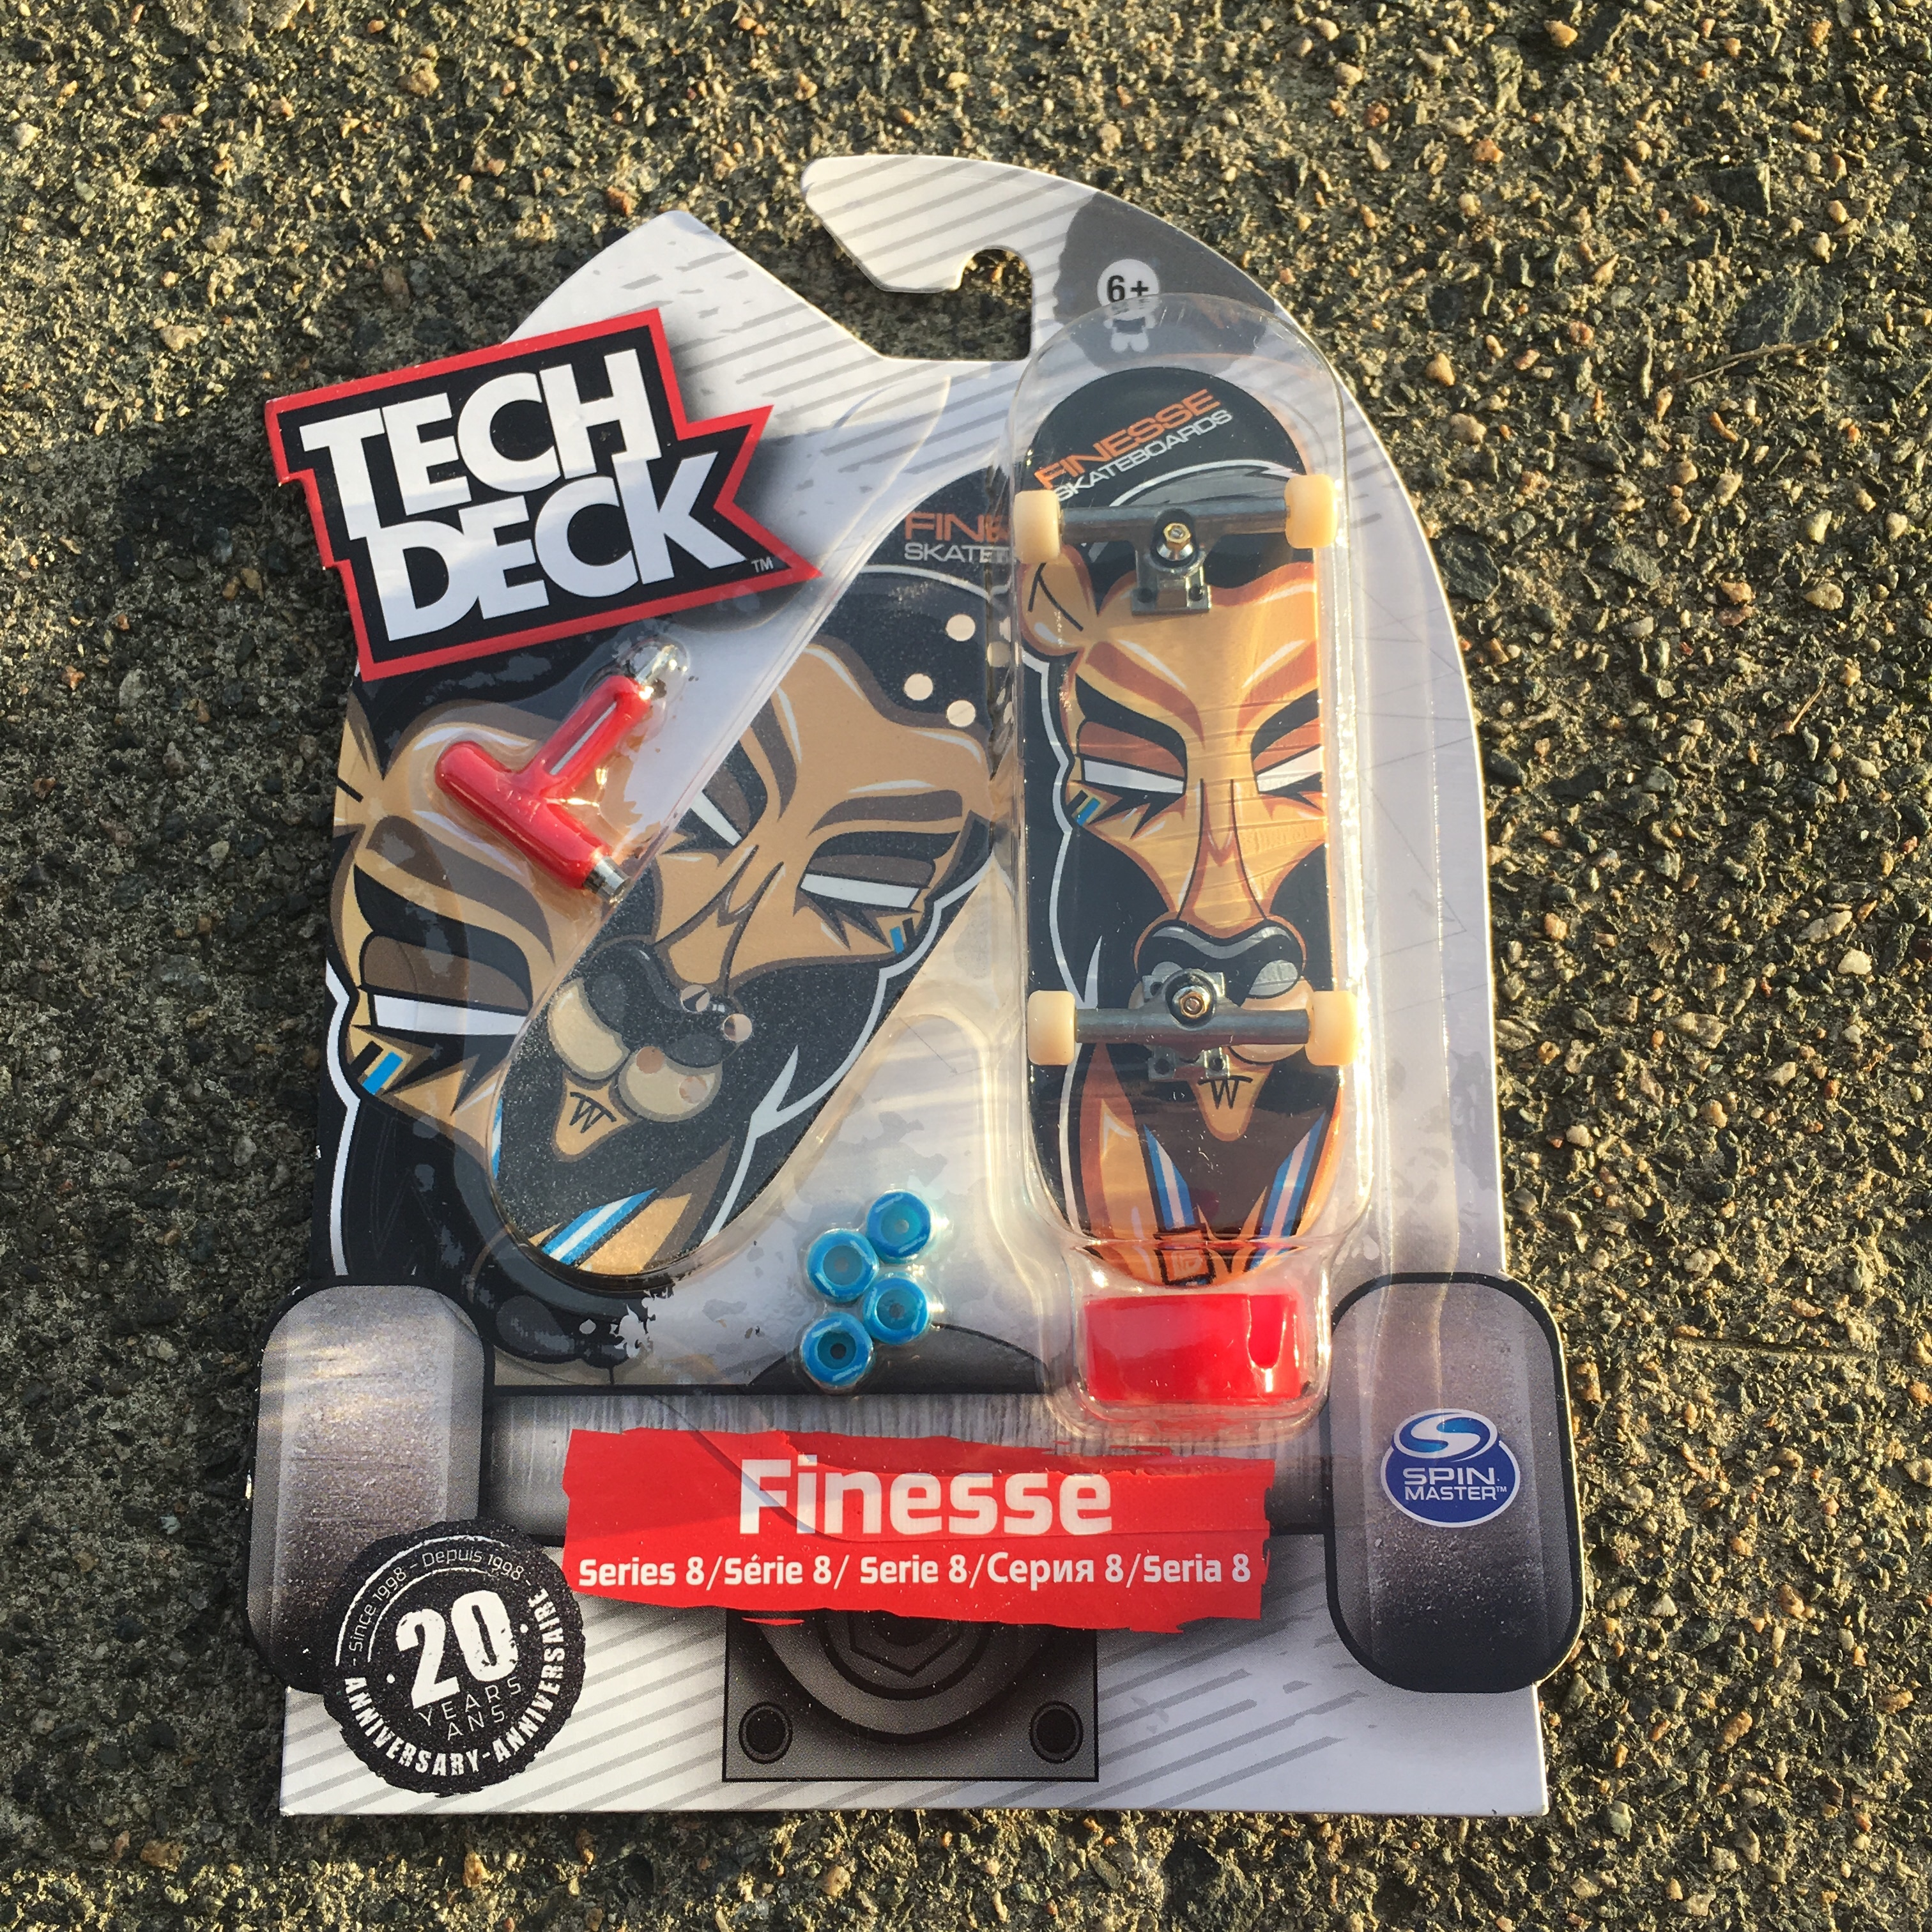 Tech Deck Series 8 Finger Skateboard  Finesse 32mm    - Depop